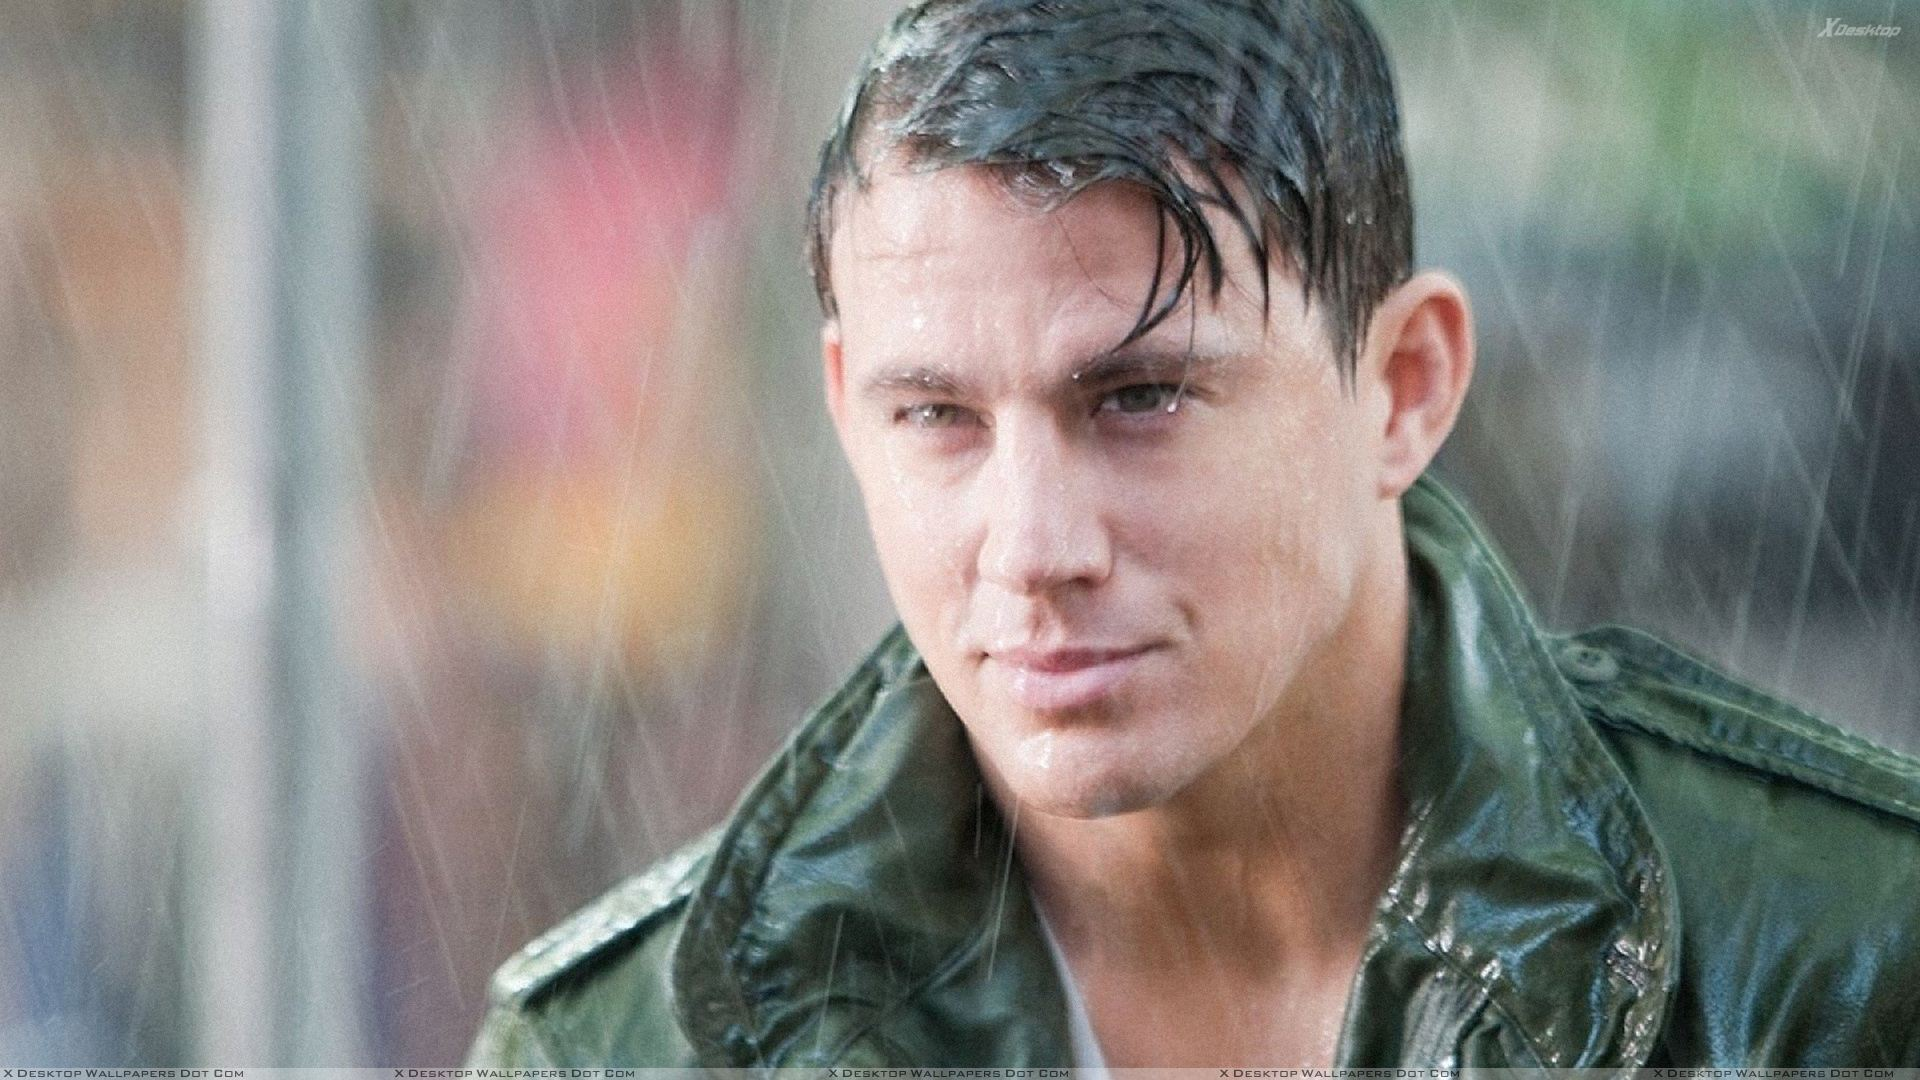 channing tatum wallpapers, photos & images in hd